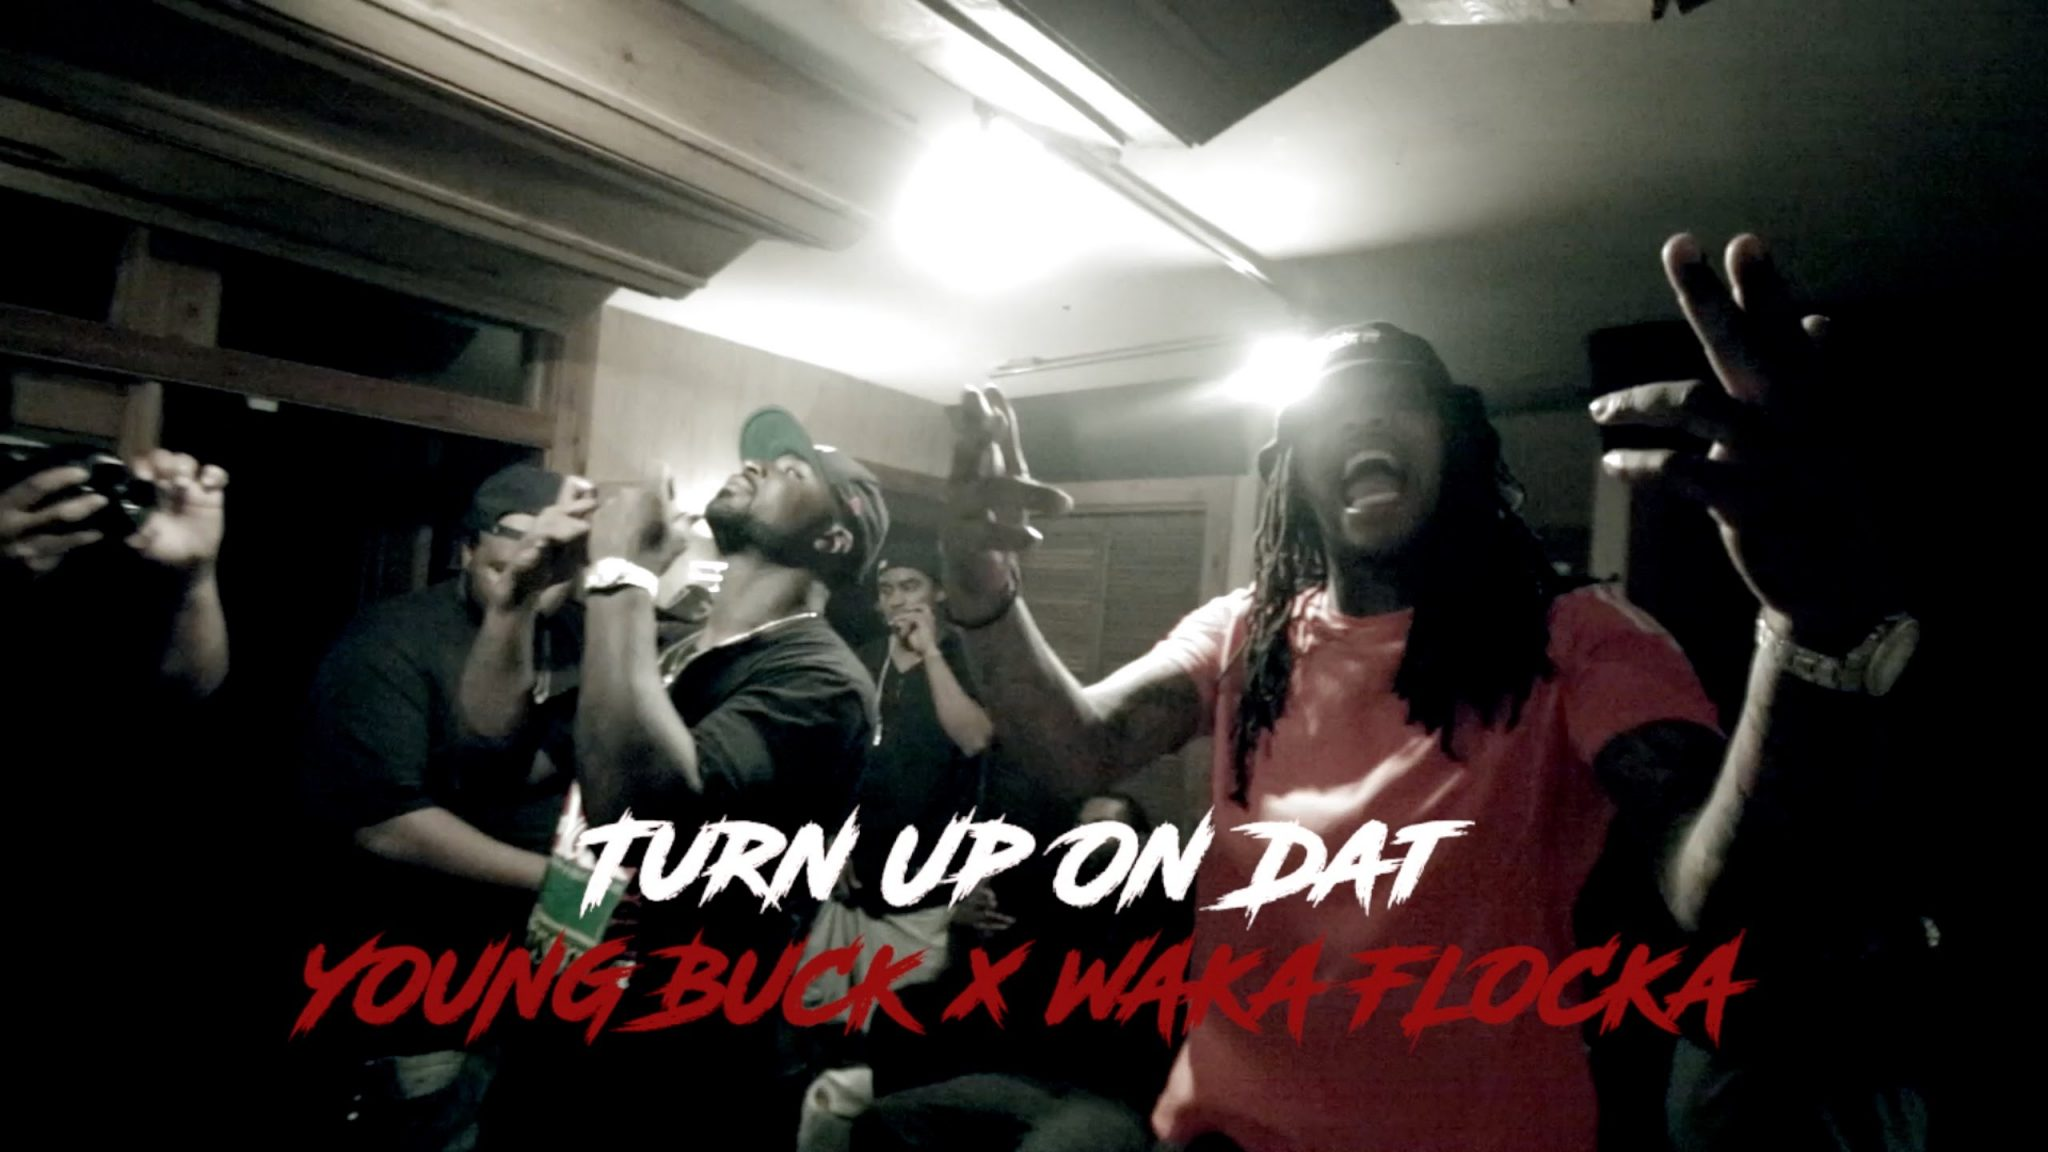 Young Buck & Waka Flocka – Turn Up On Dat